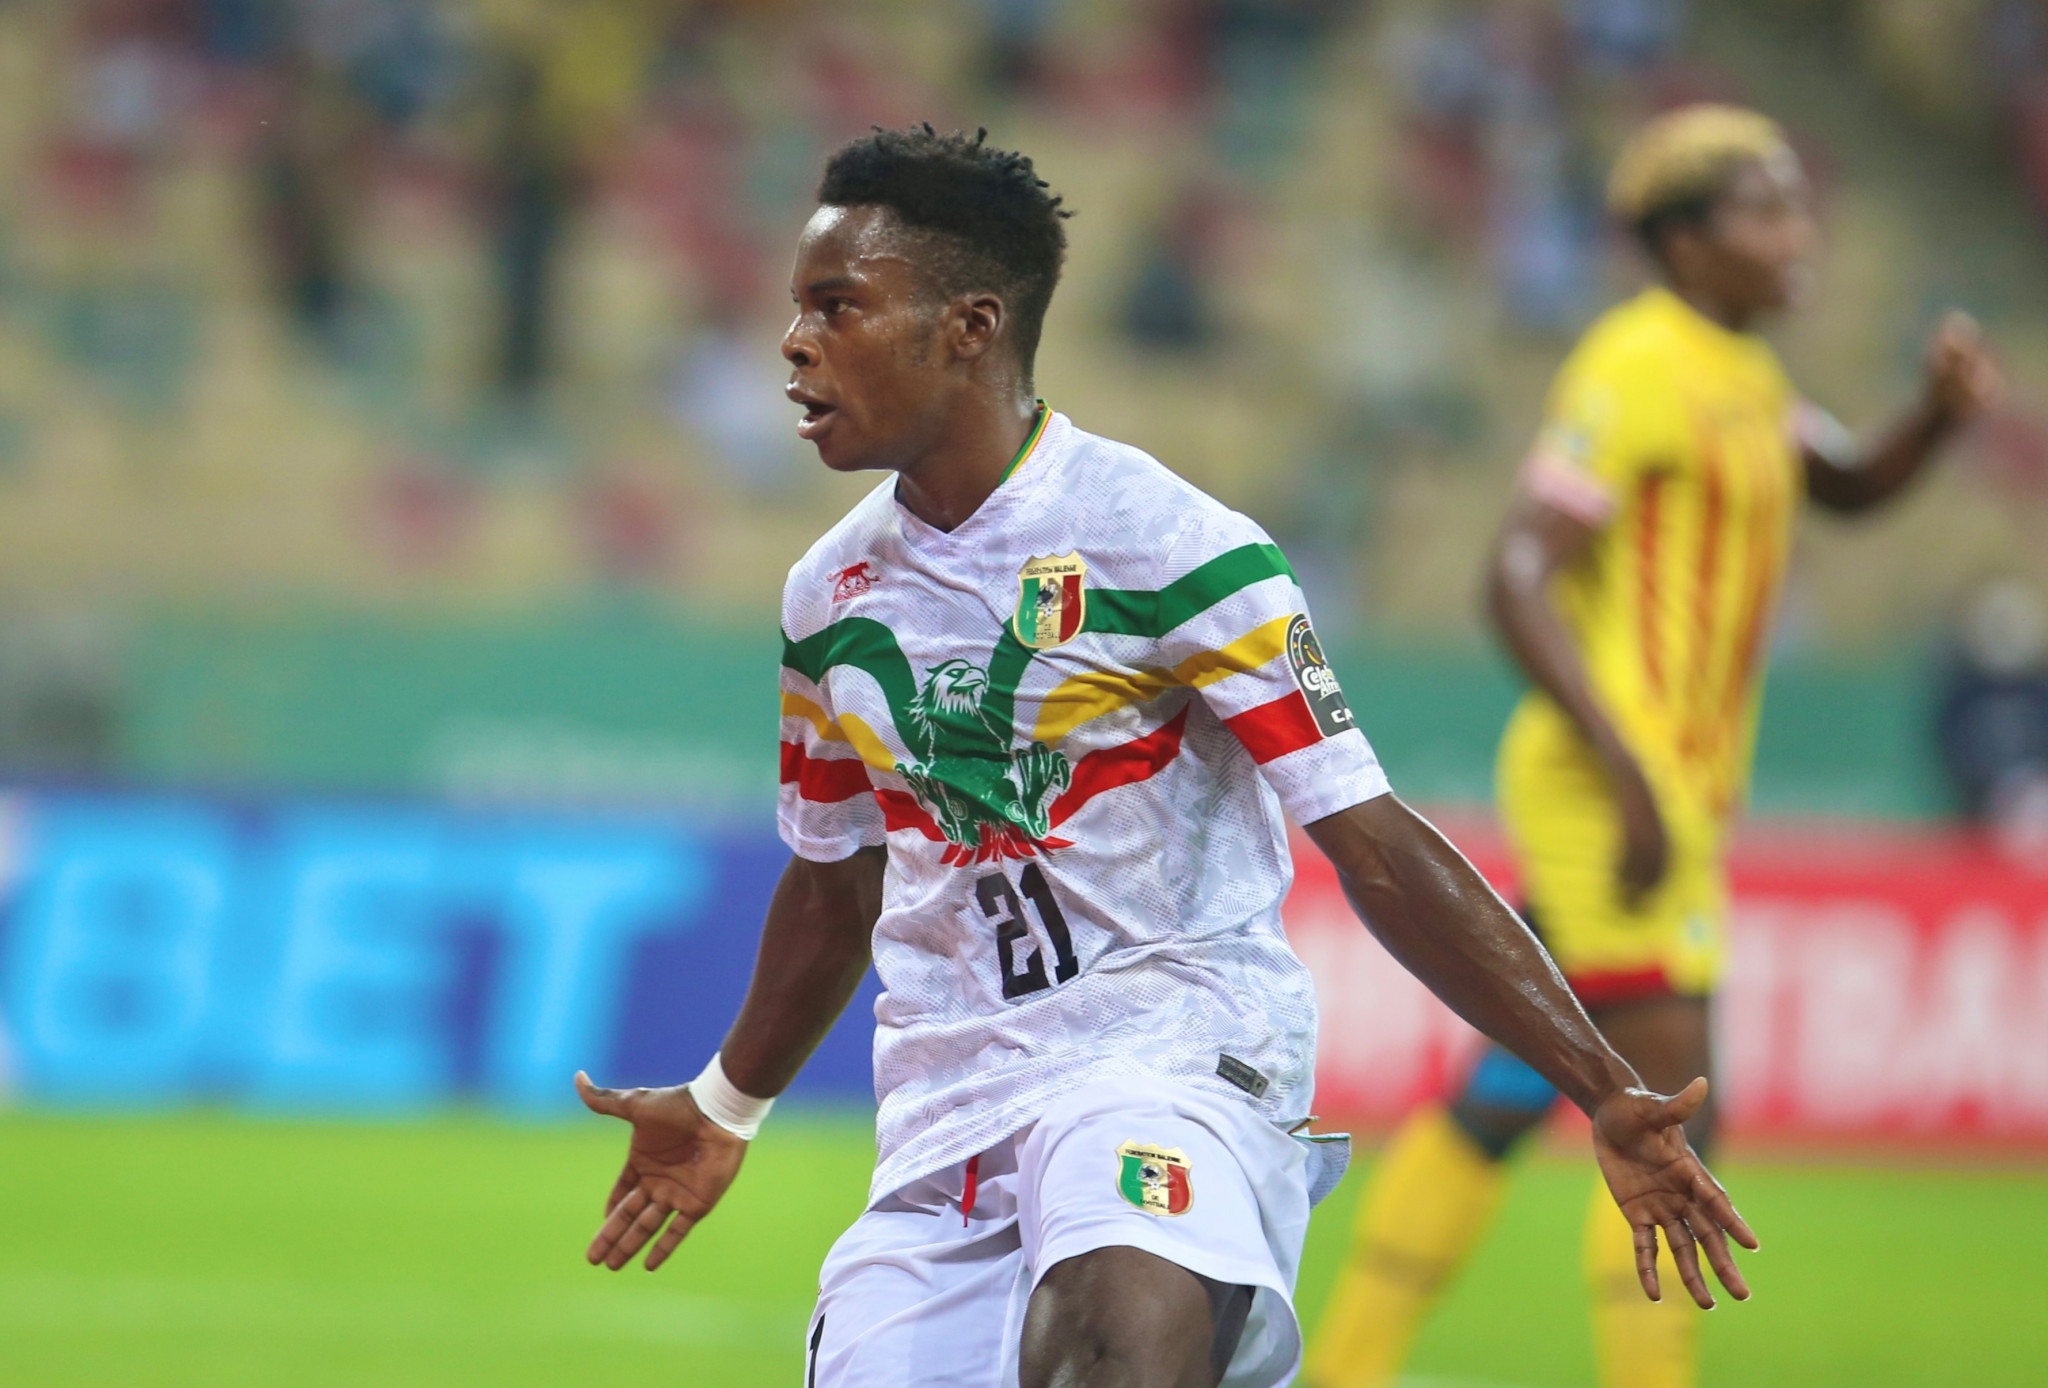 Diallo goal sees Mali win African Nations Championship Group A and hosts Cameroon also through